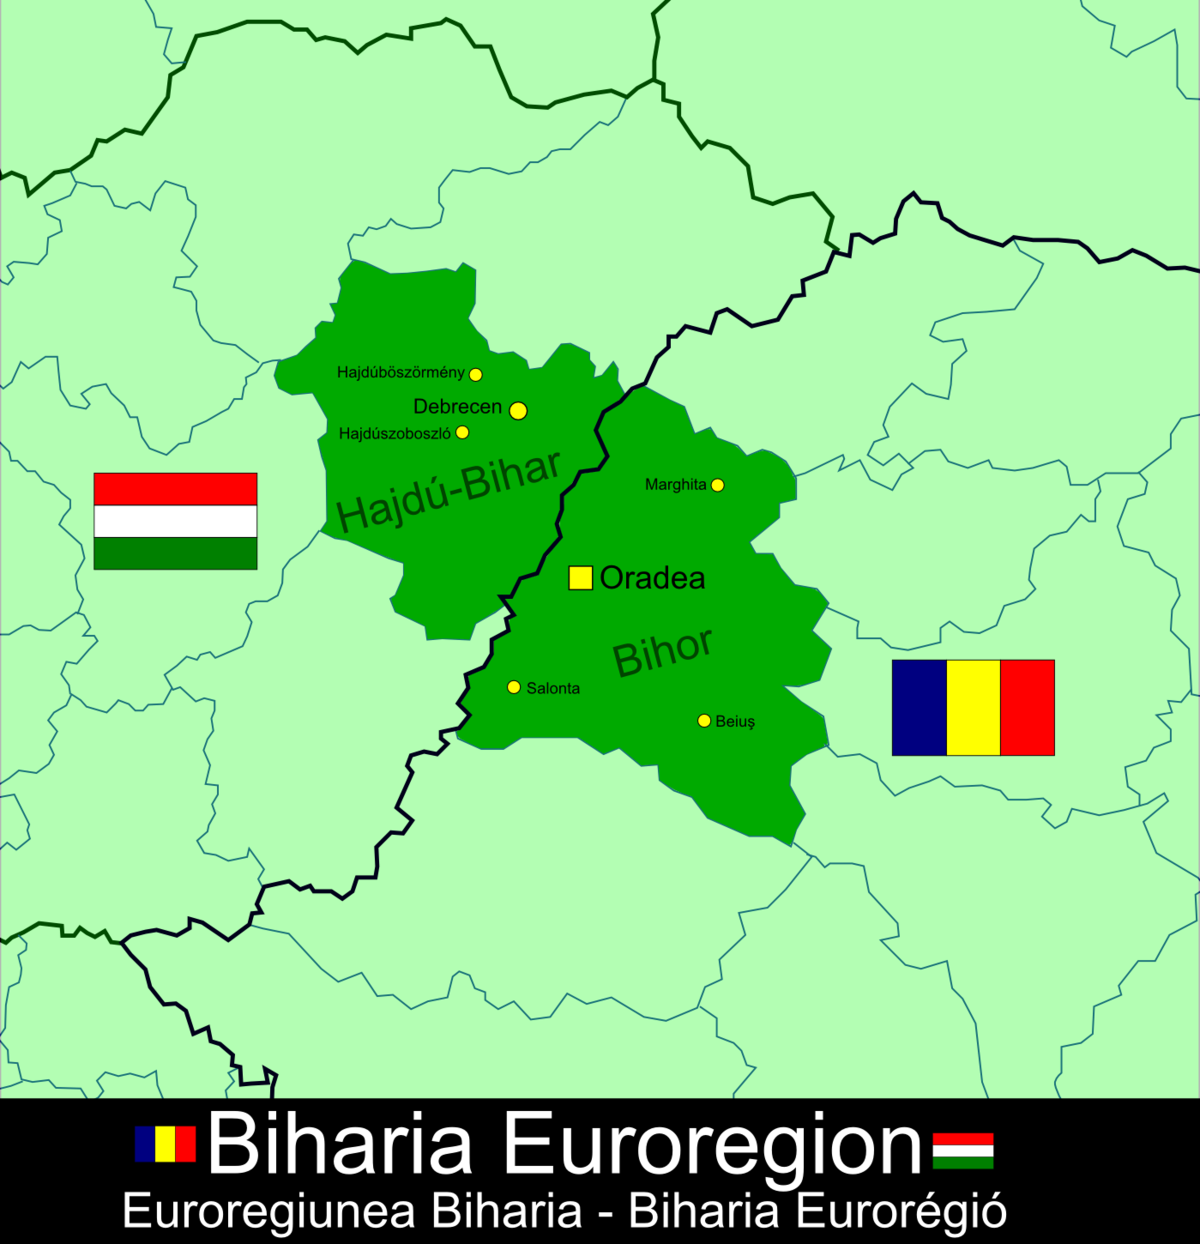 1200px-BihariaEuroregion Black Sea On Map on white sea on map, the arabian sea on map, europe on map, caucasus on map, balkans on map, aral sea on map, caspian sea on map, siberia on map, malacca strait on map, bering strait on map, amazon river on map, red sea on map, arabian gulf on map, niger river on map, bosporus on map, bay of bengal on map, adriatic on map, elbe river on map, lake victoria on map, english channel on map,